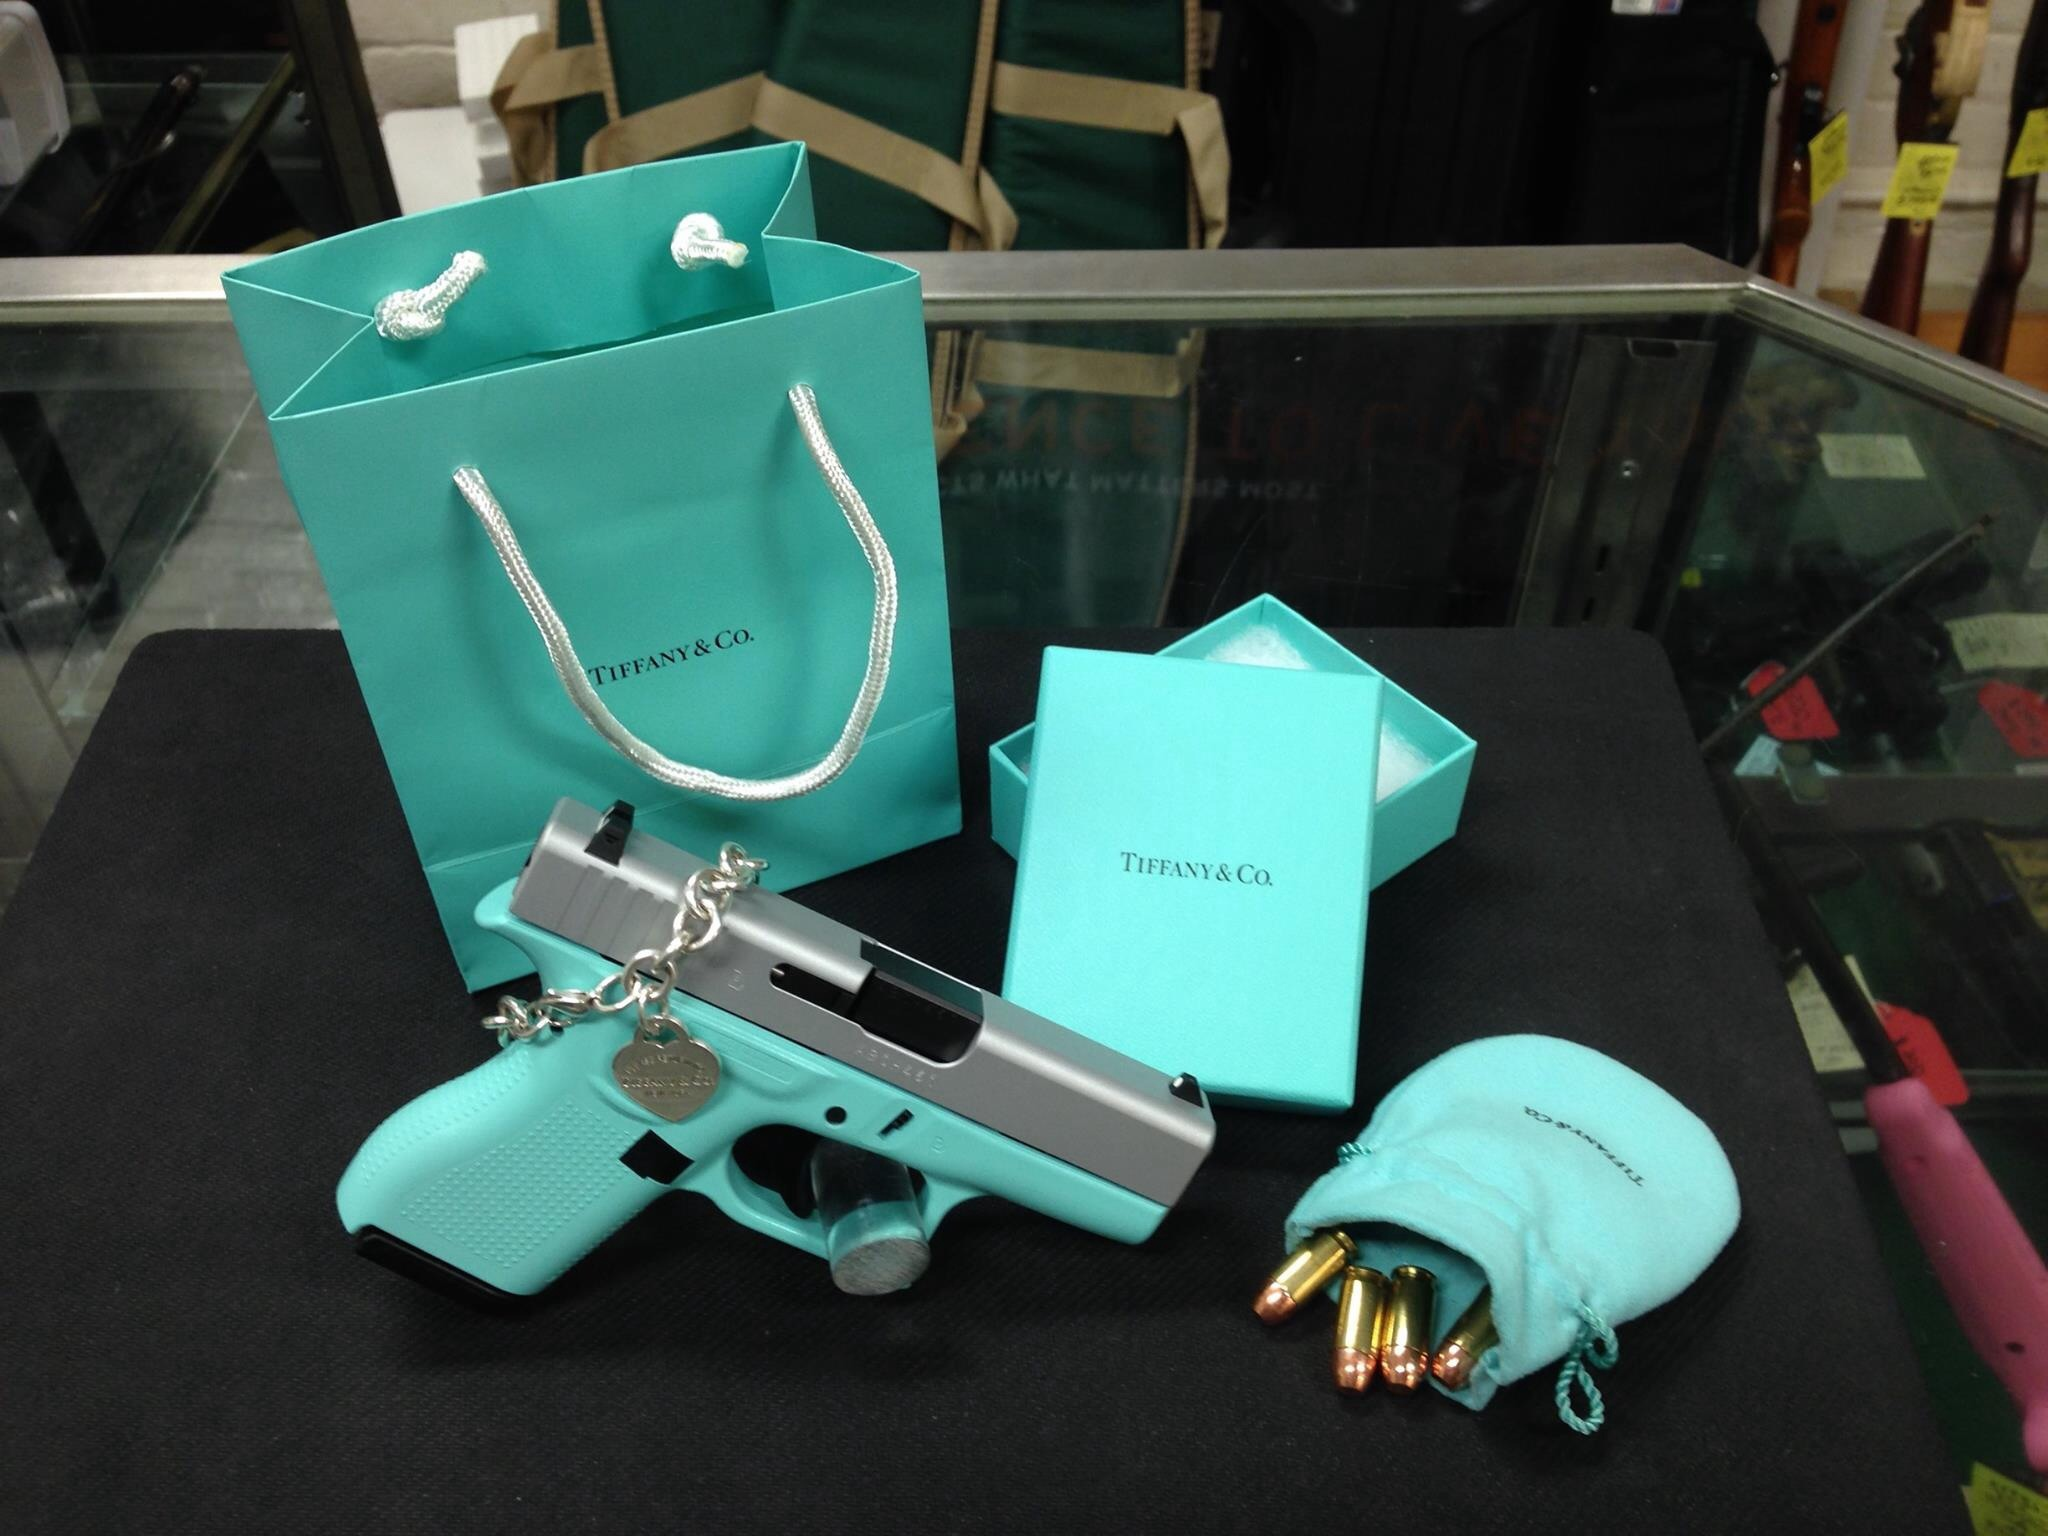 The Tiffany Pistol – Is it Really a Thing?